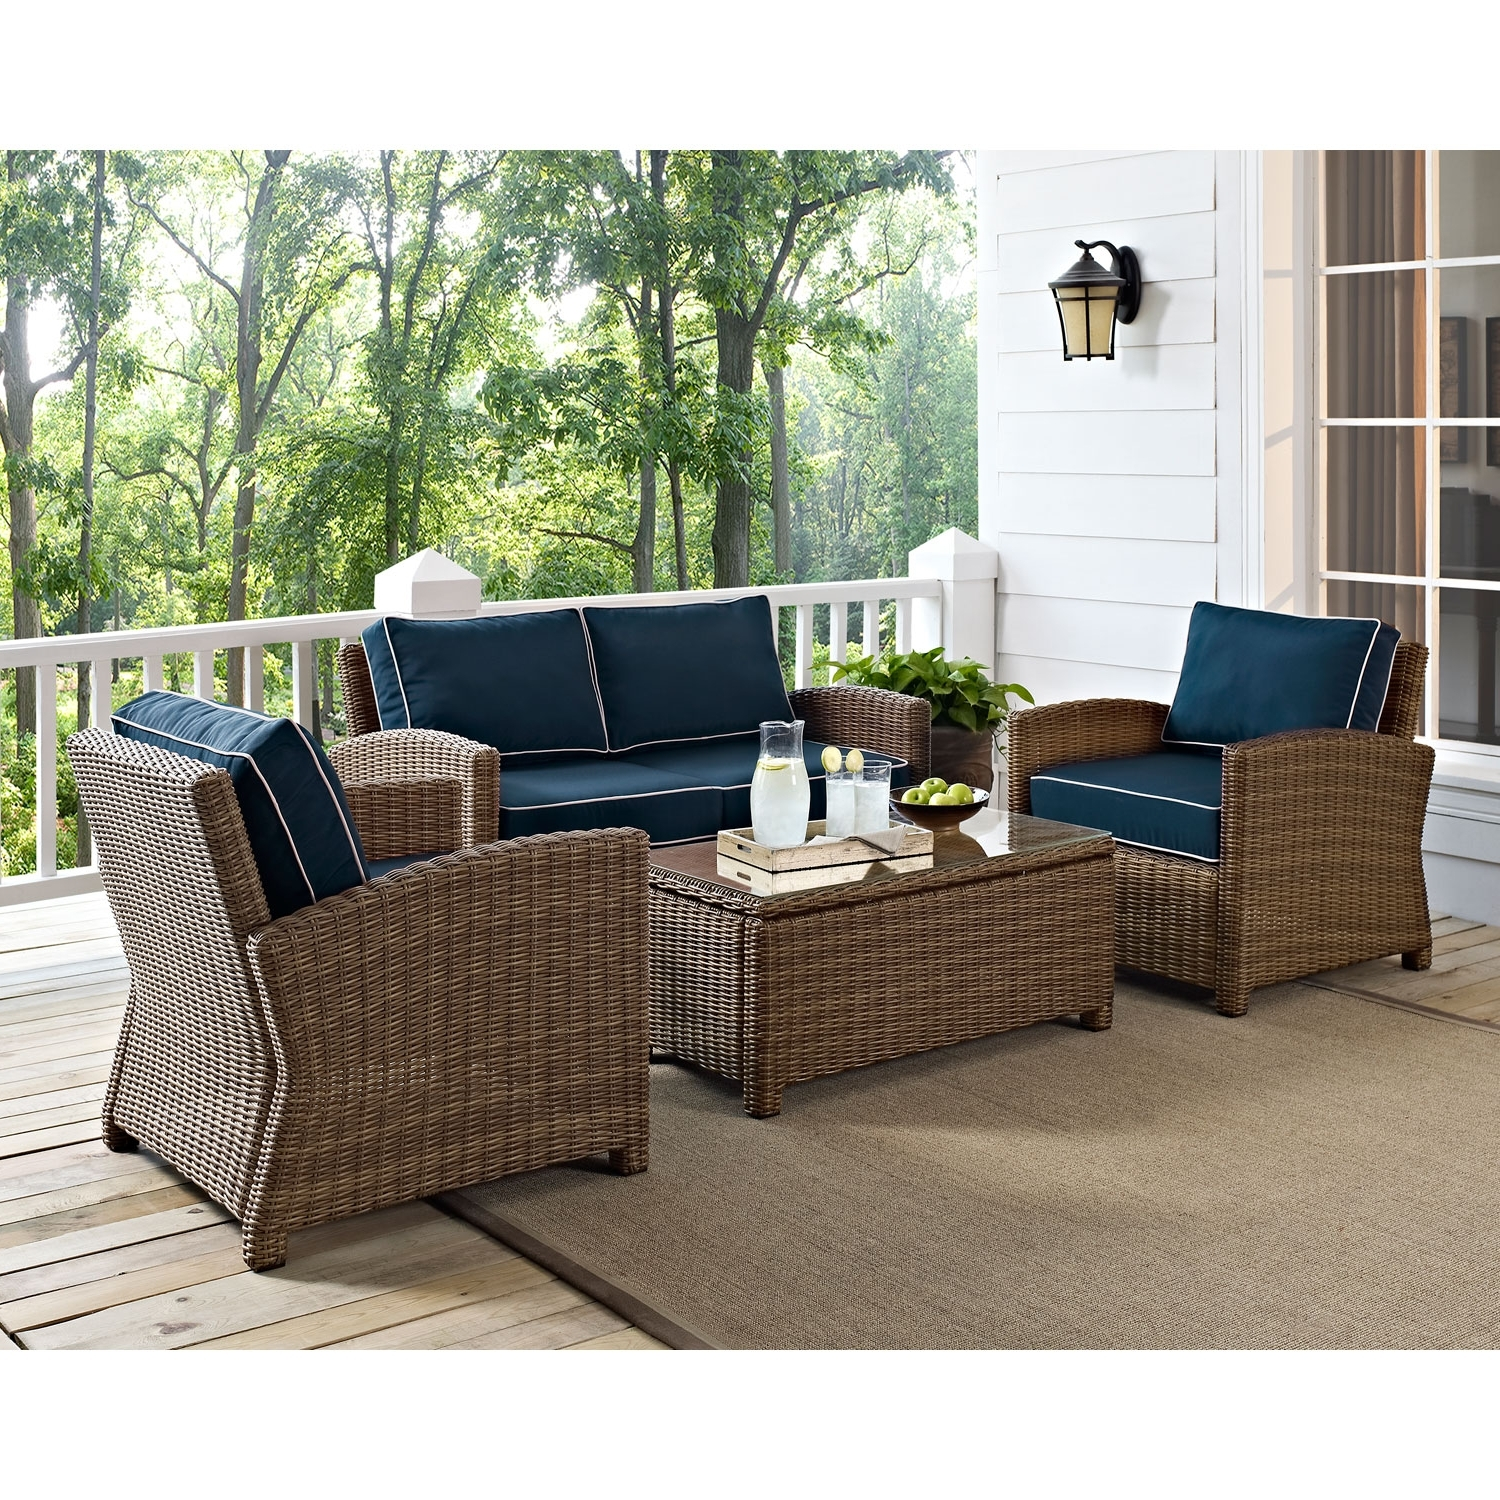 Wicker 4Pc Patio Conversation Sets With Navy Cushions Pertaining To Best And Newest Crosley Furniture Bradenton 4 Piece Outdoor Wicker Seating Set With (View 2 of 15)